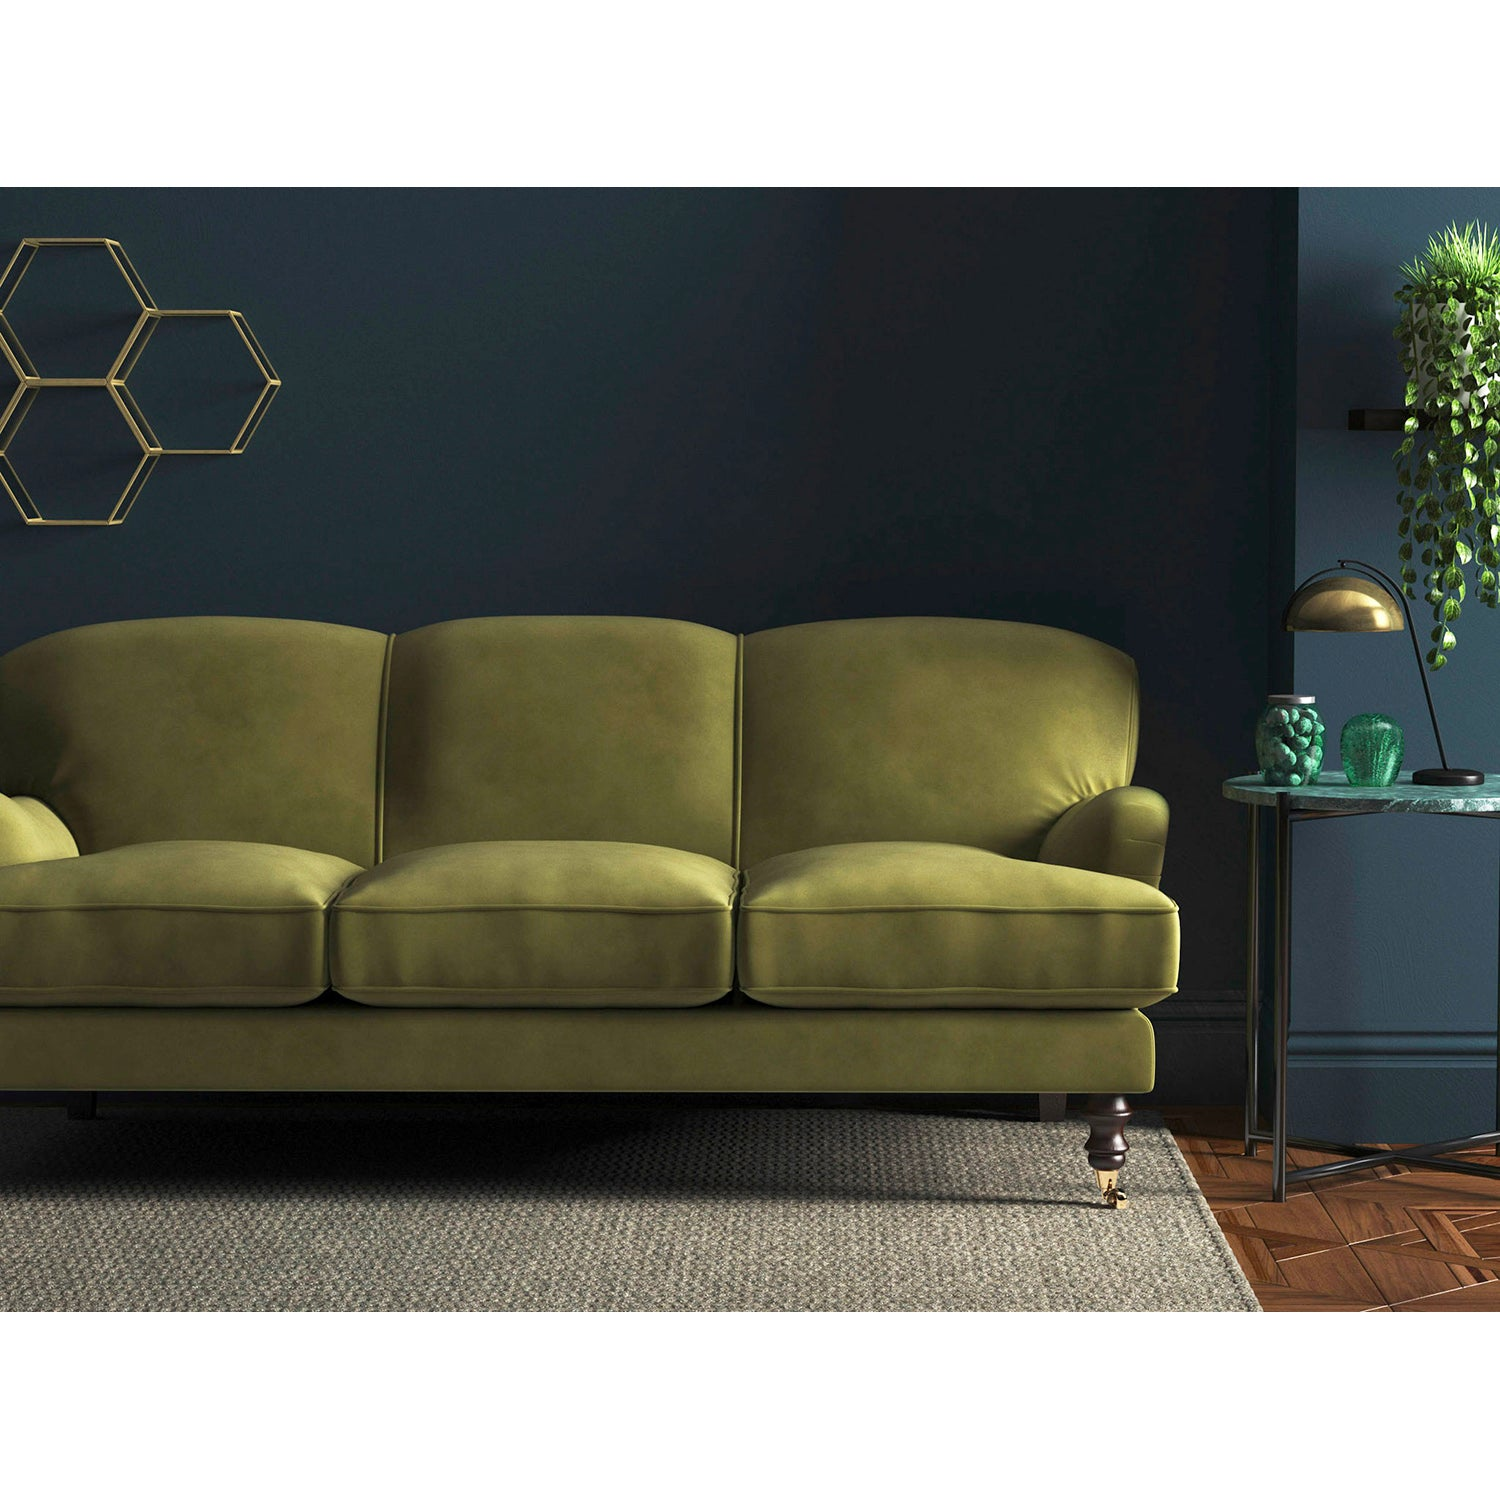 Green velvet sofa with a stain resistant finish